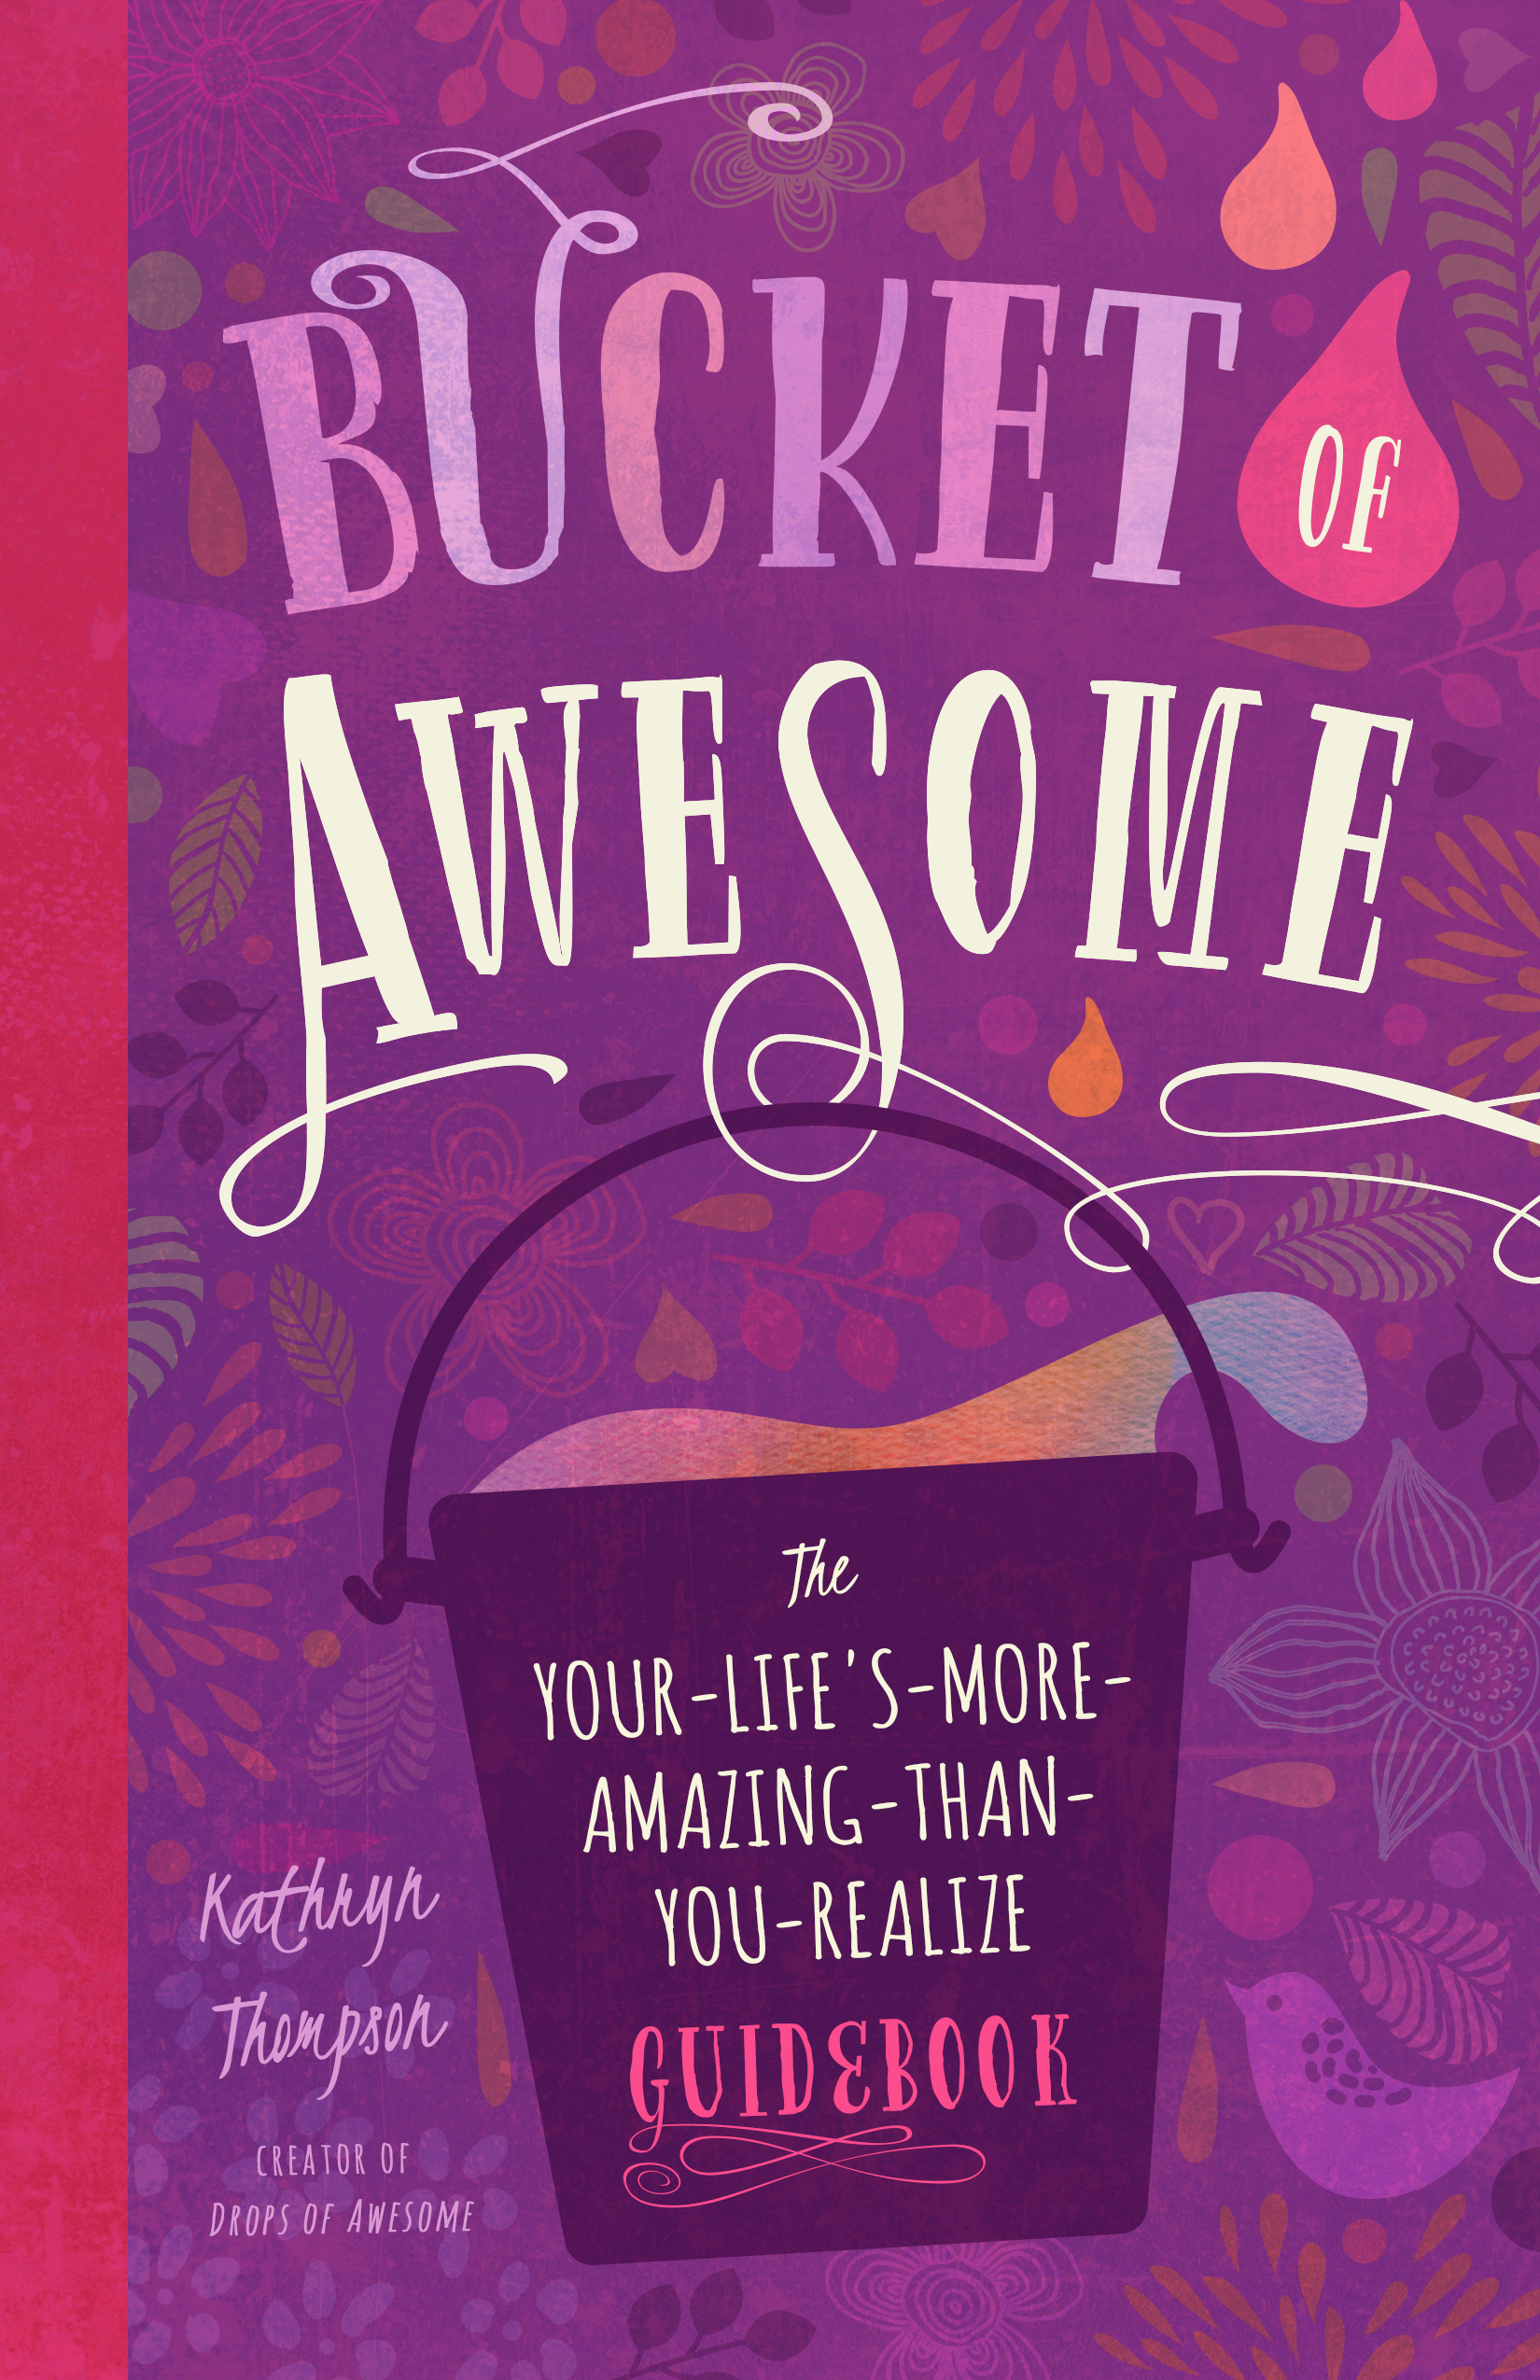 Book Review: Bucket of Awesome